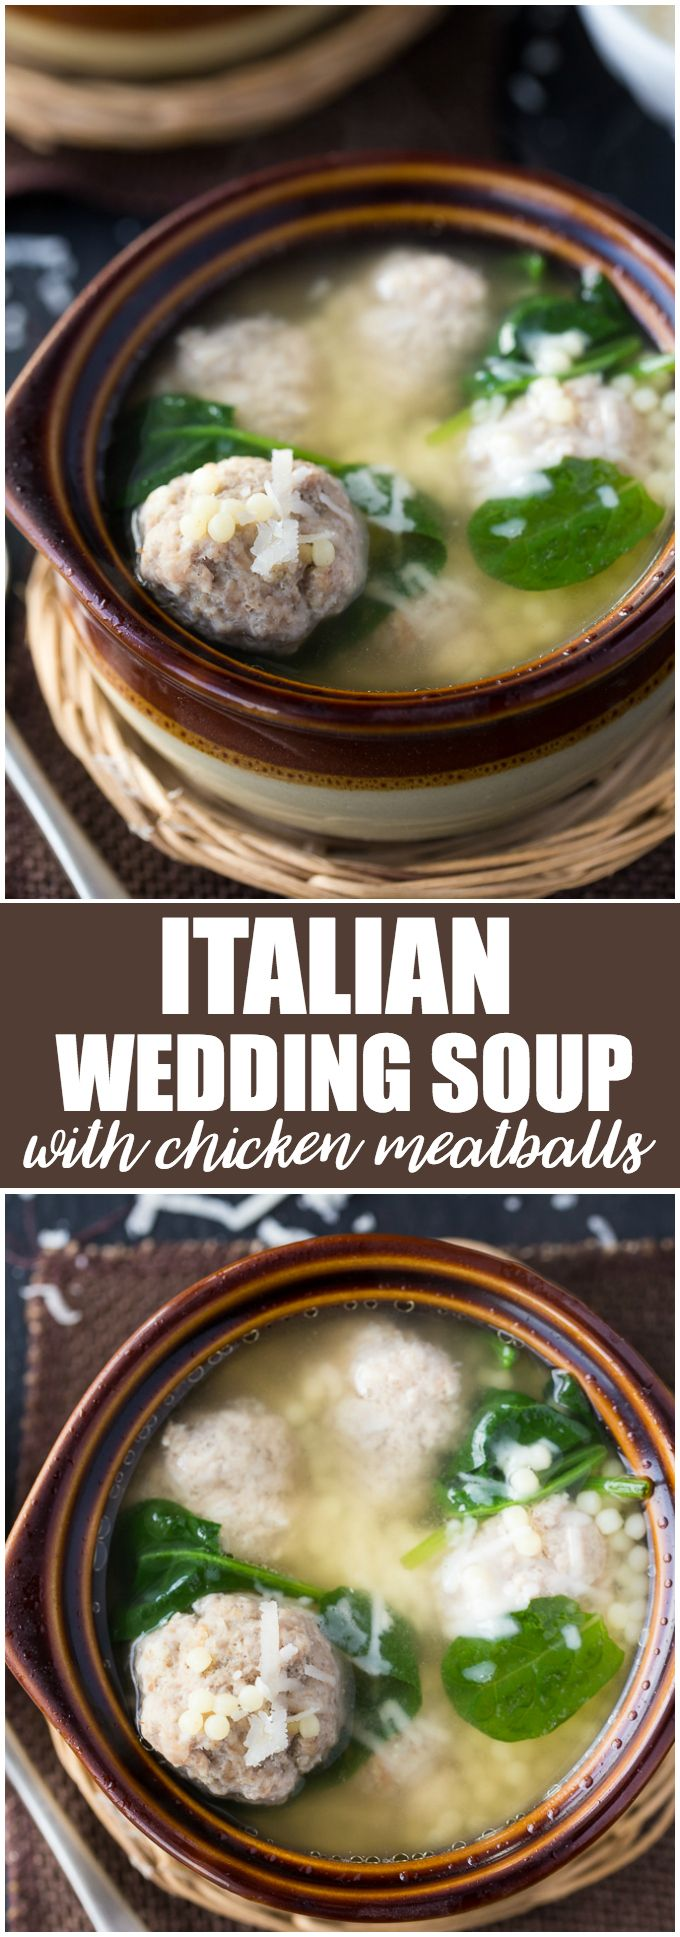 Italian Wedding Soup with Chicken Meatballs - A bowl of comfort food! This easy soup is perfect to enjoy on a cold winter's day.